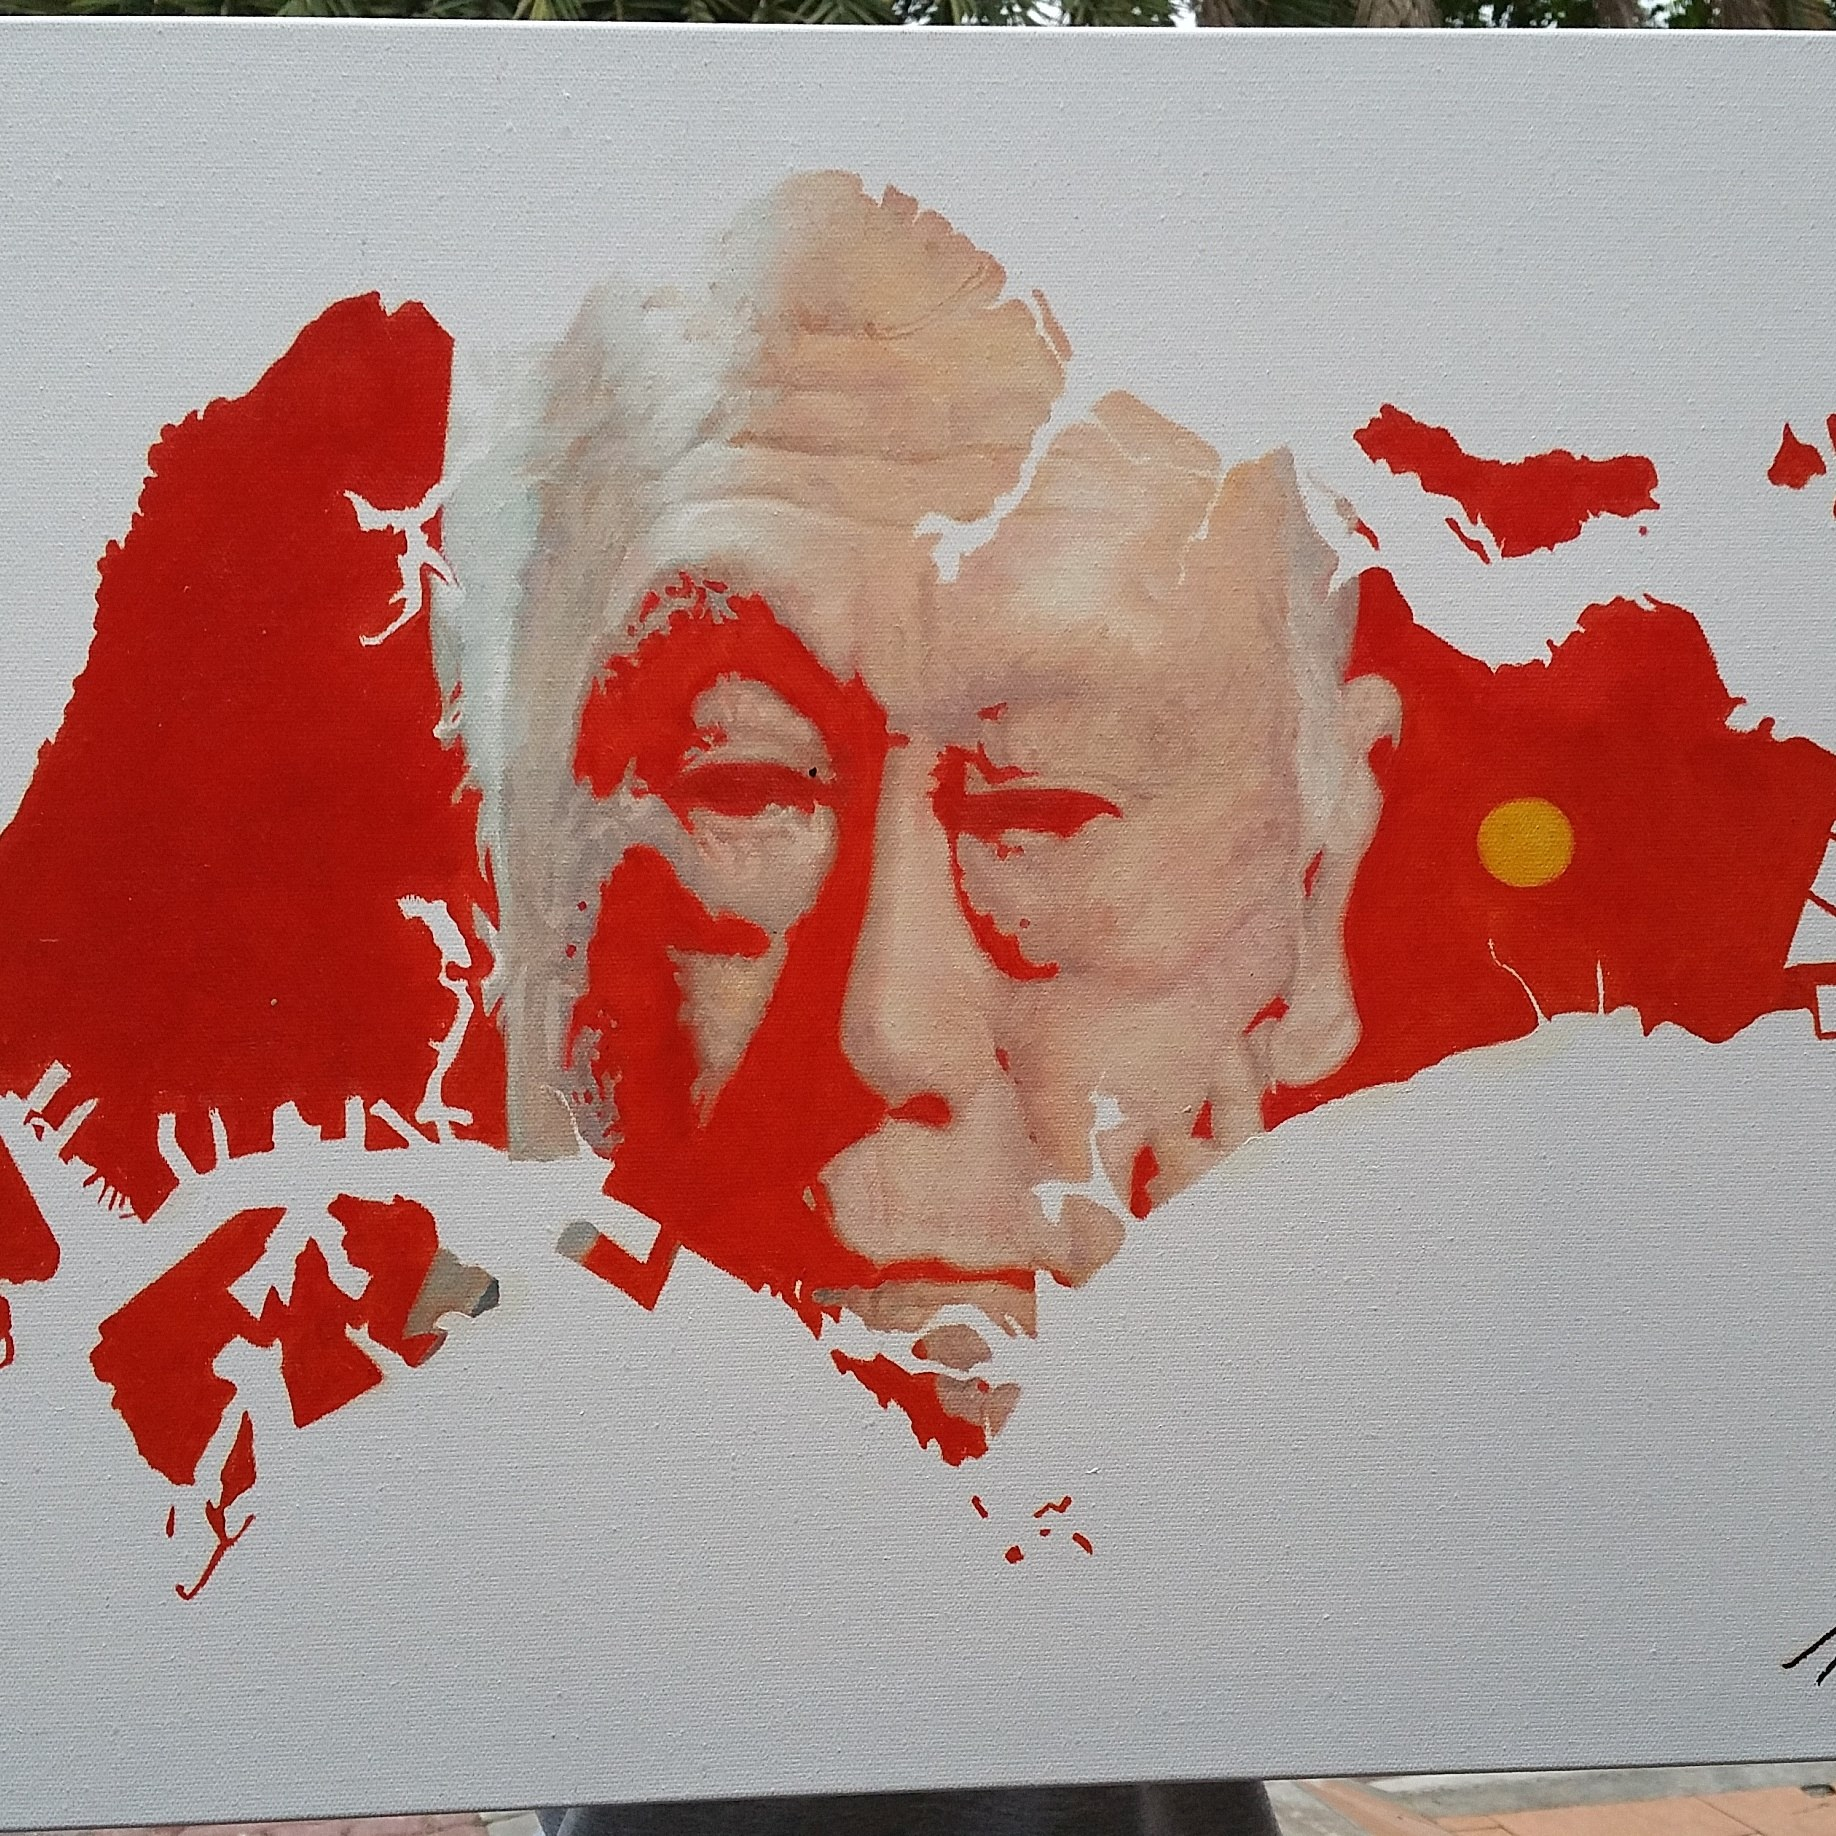 Lee Kuan Yew Tribute~ The Red Dot